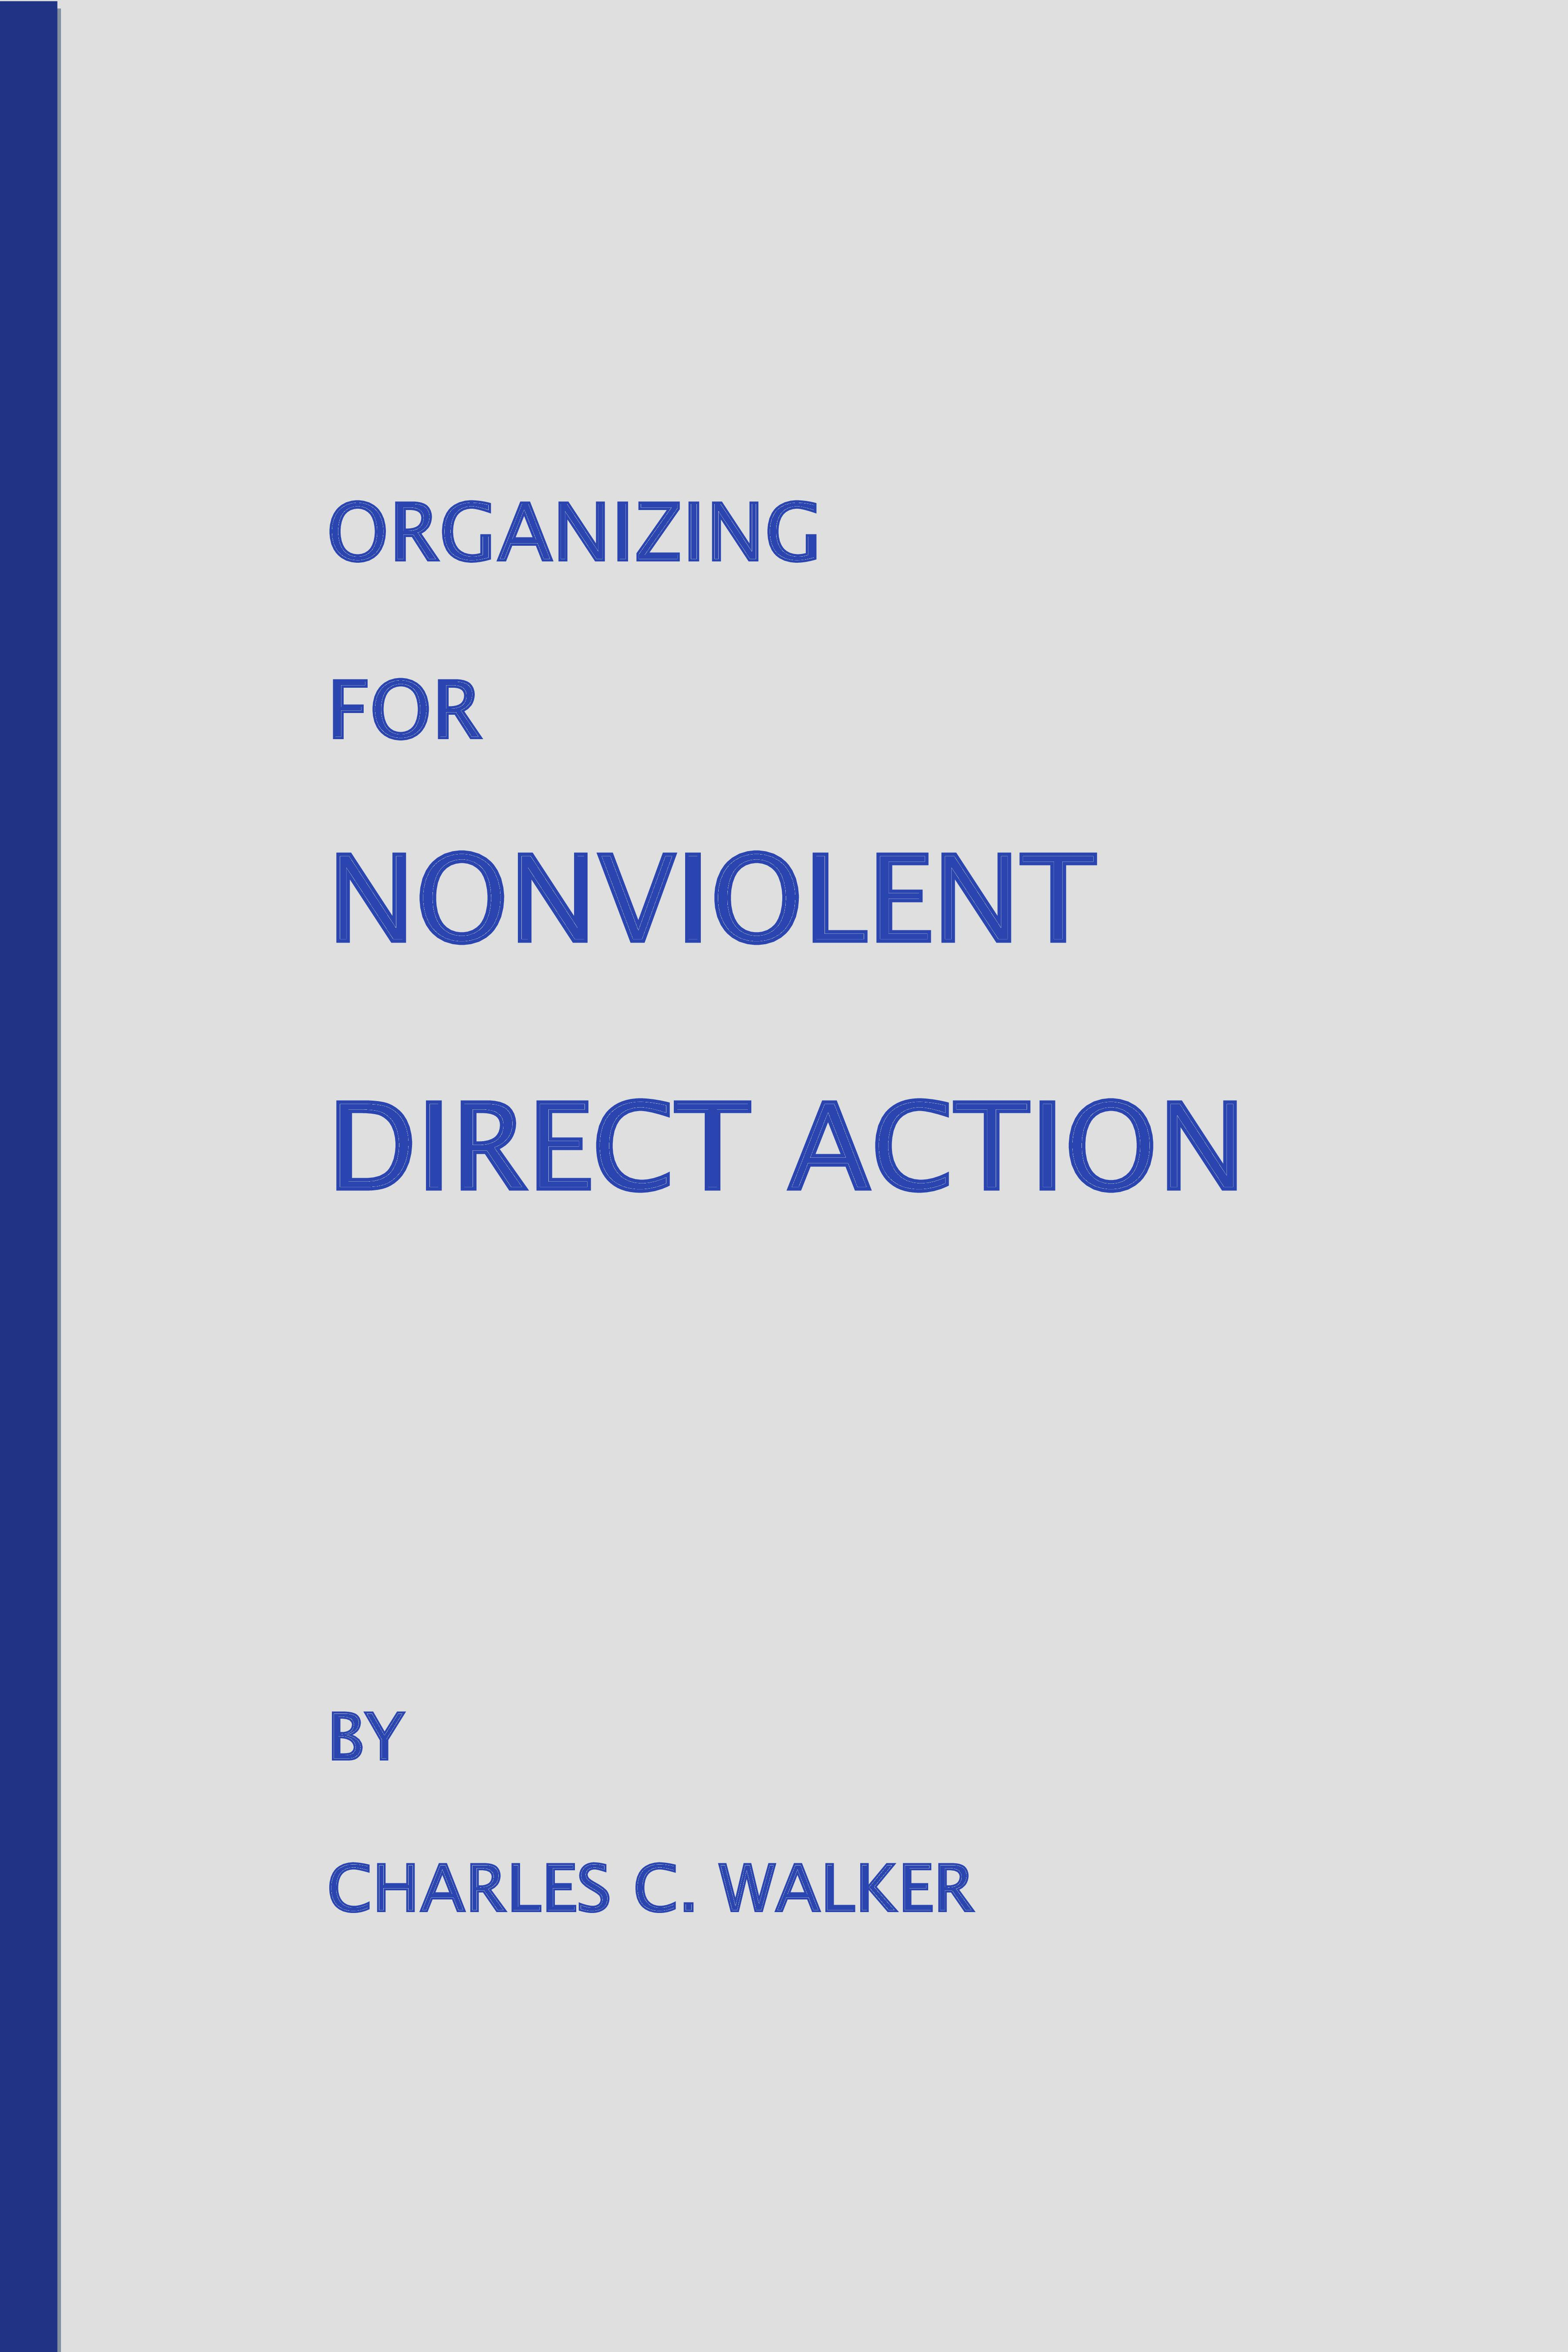 Organizing for Nonviolent Direct Action: on Amazon